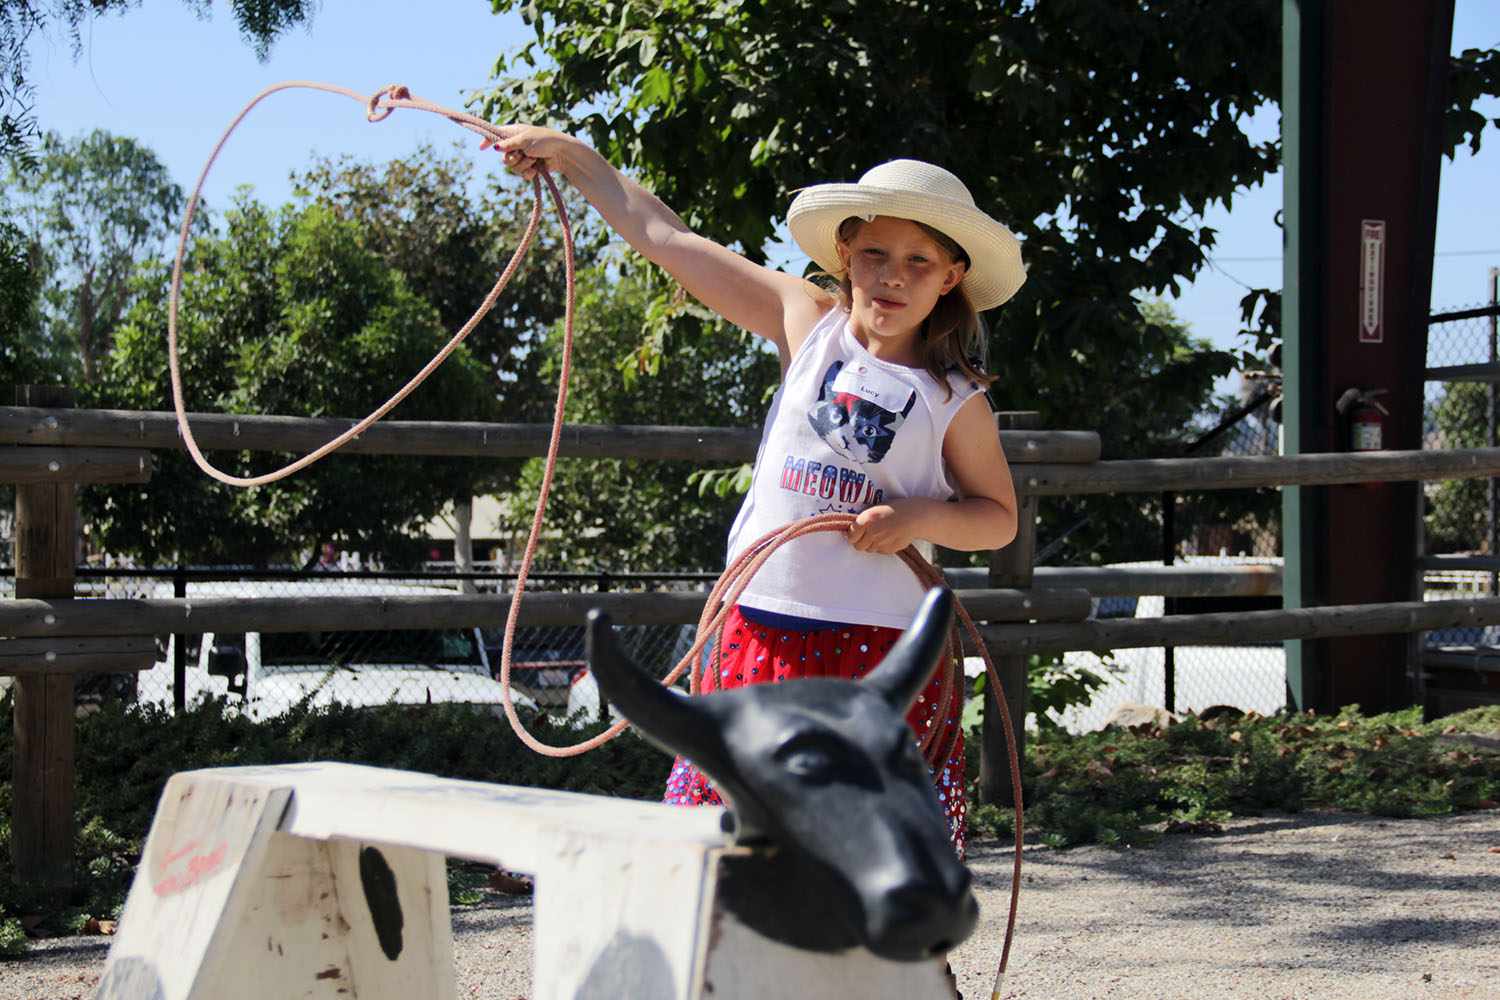 Shea Center Hosts Annual Cowboy Camp for Kids - The J.F. Shea Therapeutic Riding Center on Wednesday, Aug. 14, welcomed several children to take part in its annual Cowboy Camp where the kids got to learn ranched-based skills from local cowboys.